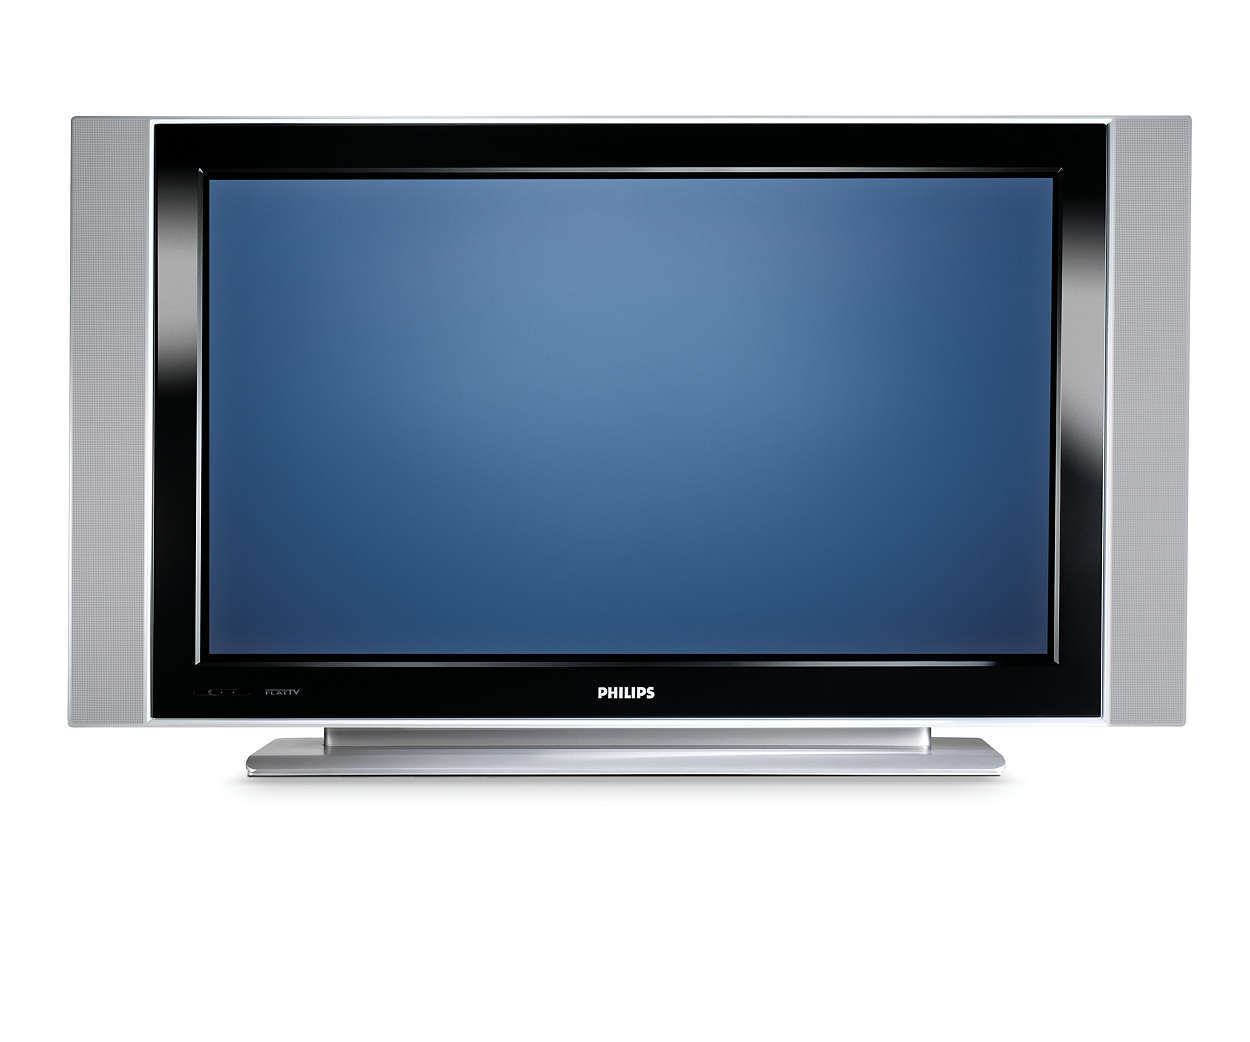 Integrated Flat Plasma HDTV for entertainment